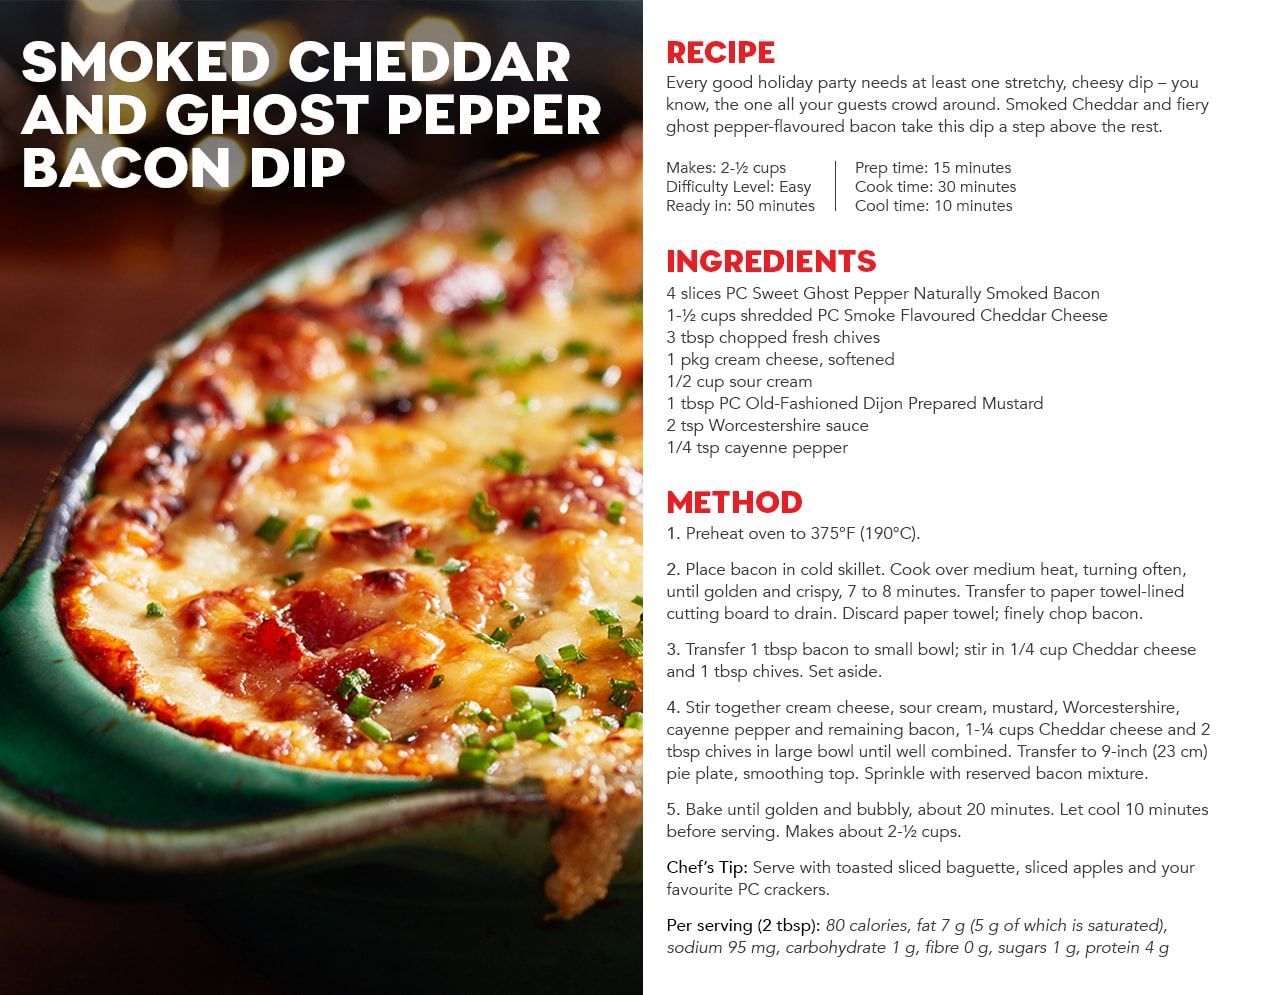 Smoked Cheddar And Ghost Pepper Bacon Dip Recipe Stuffed Peppers